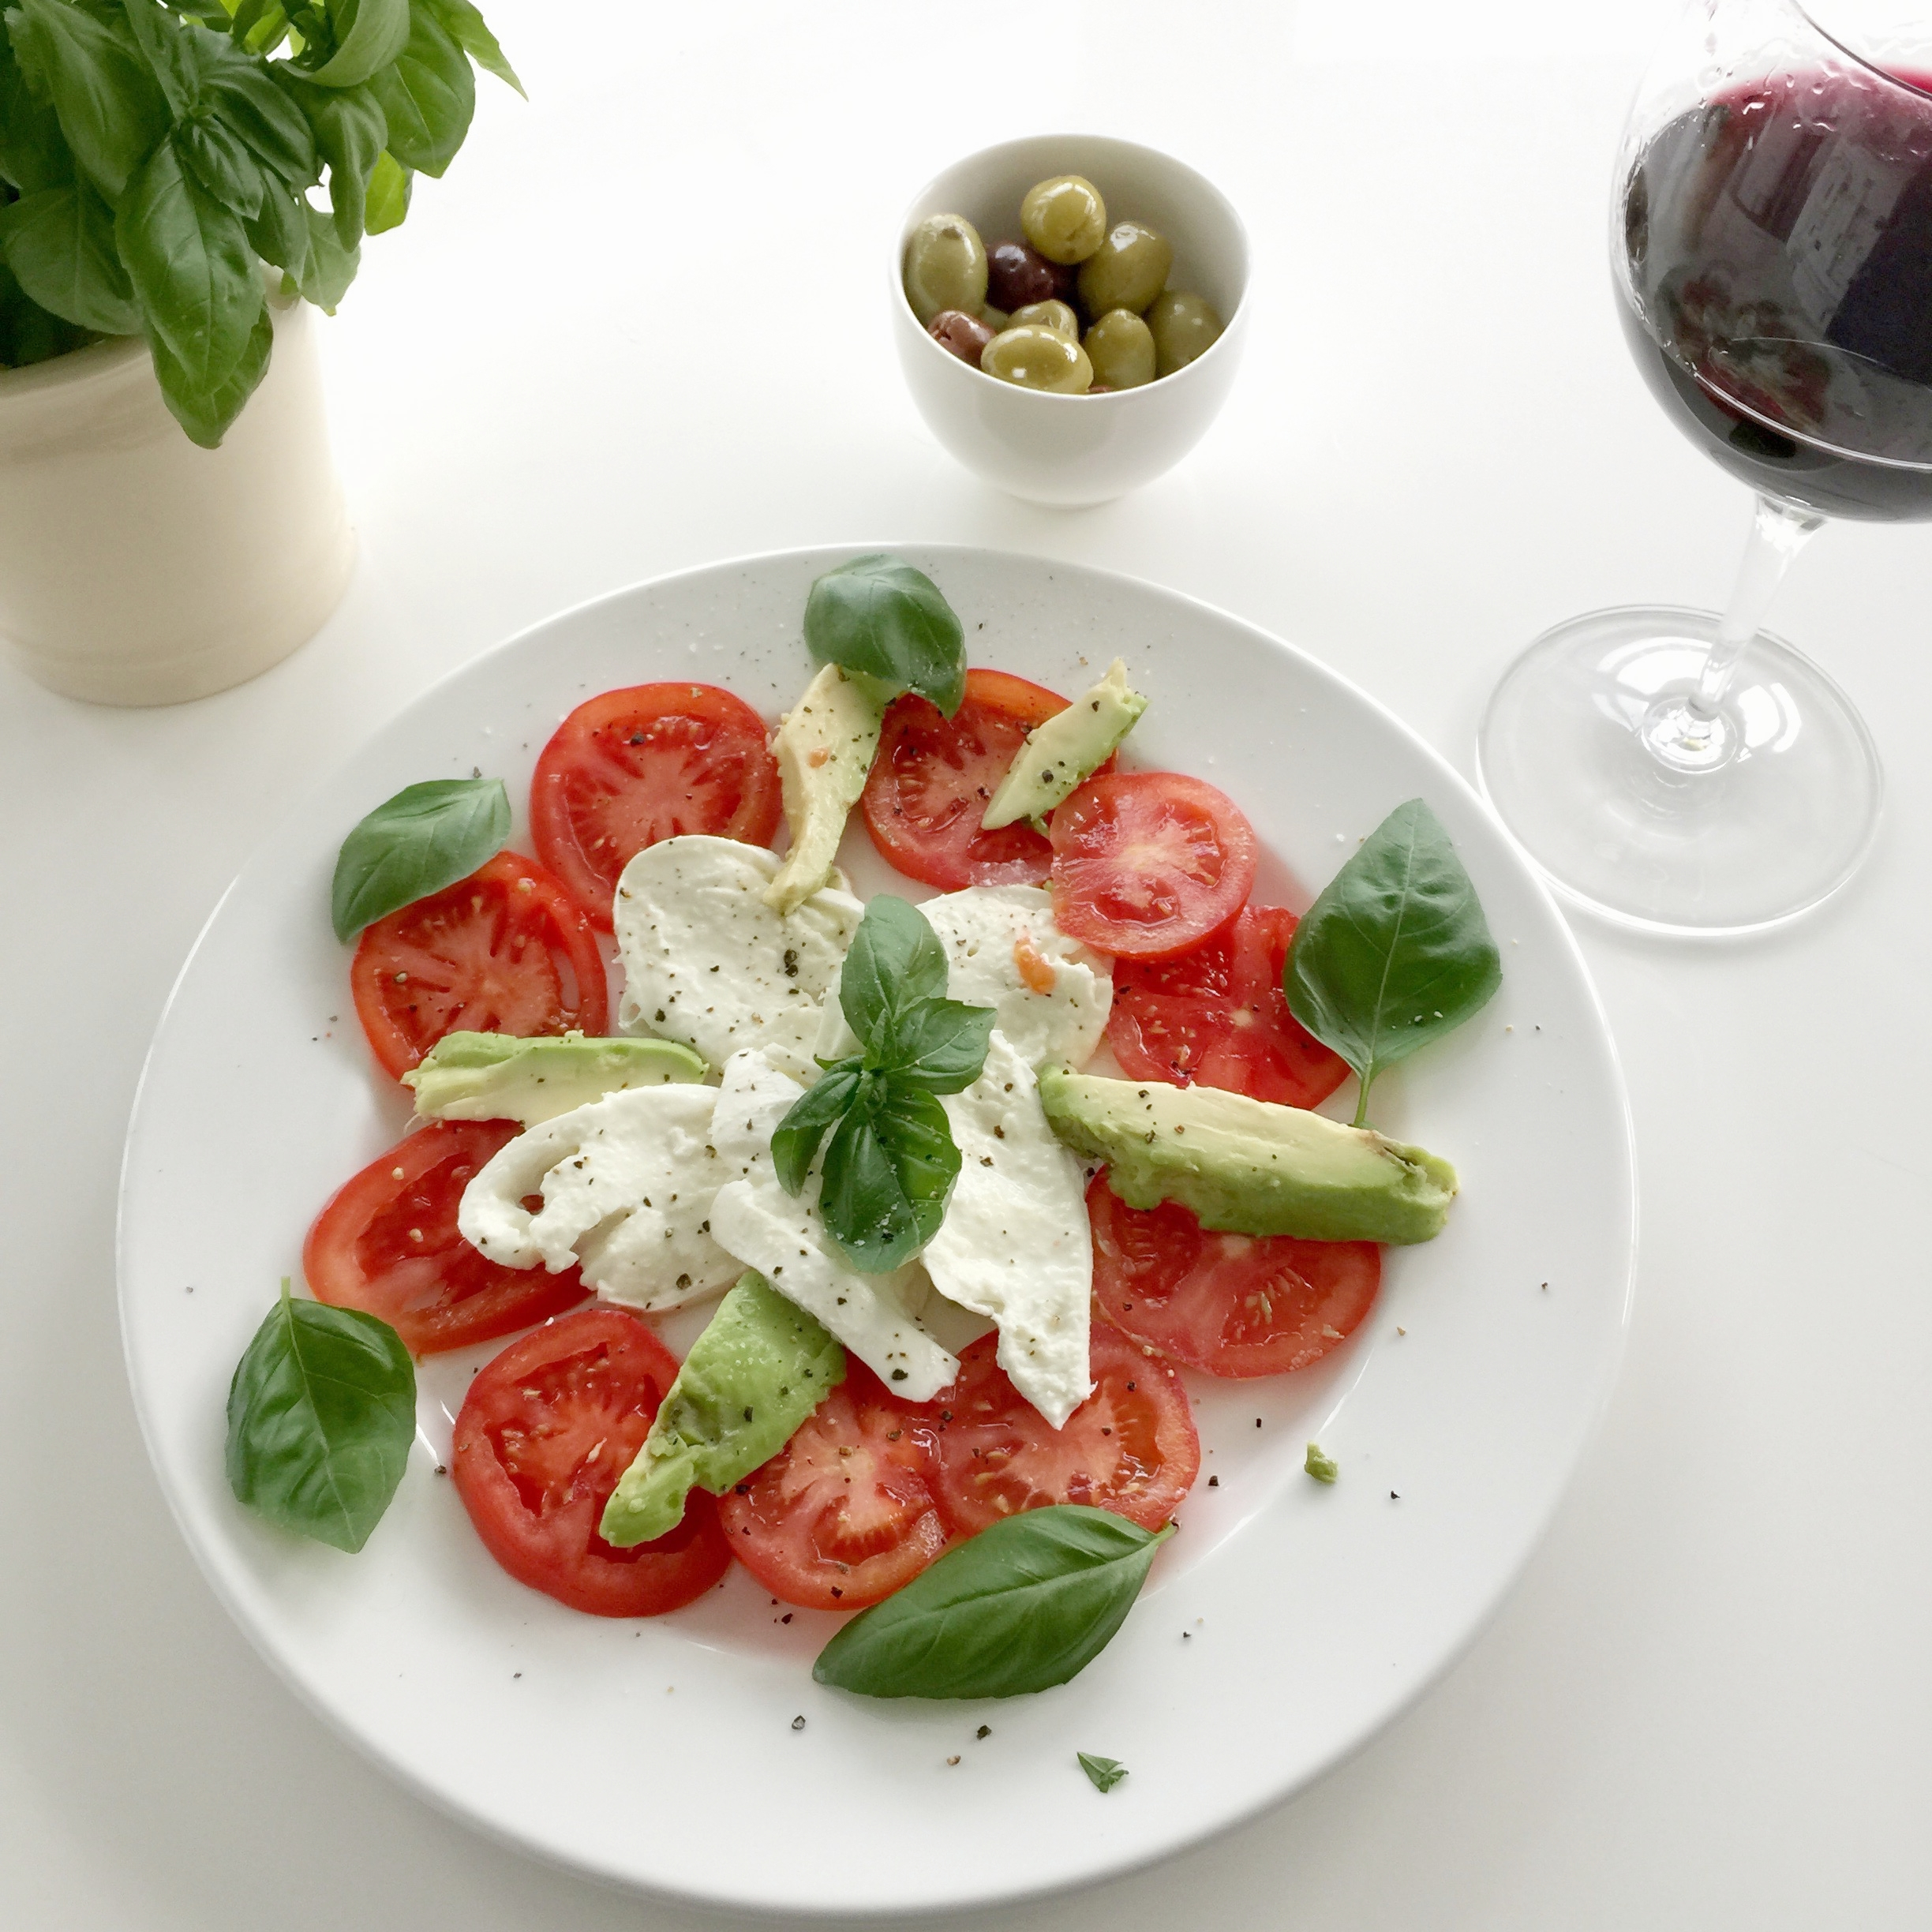 Tomato, buffalo mozzarella, avocado & basil. Yum, health on a plate!